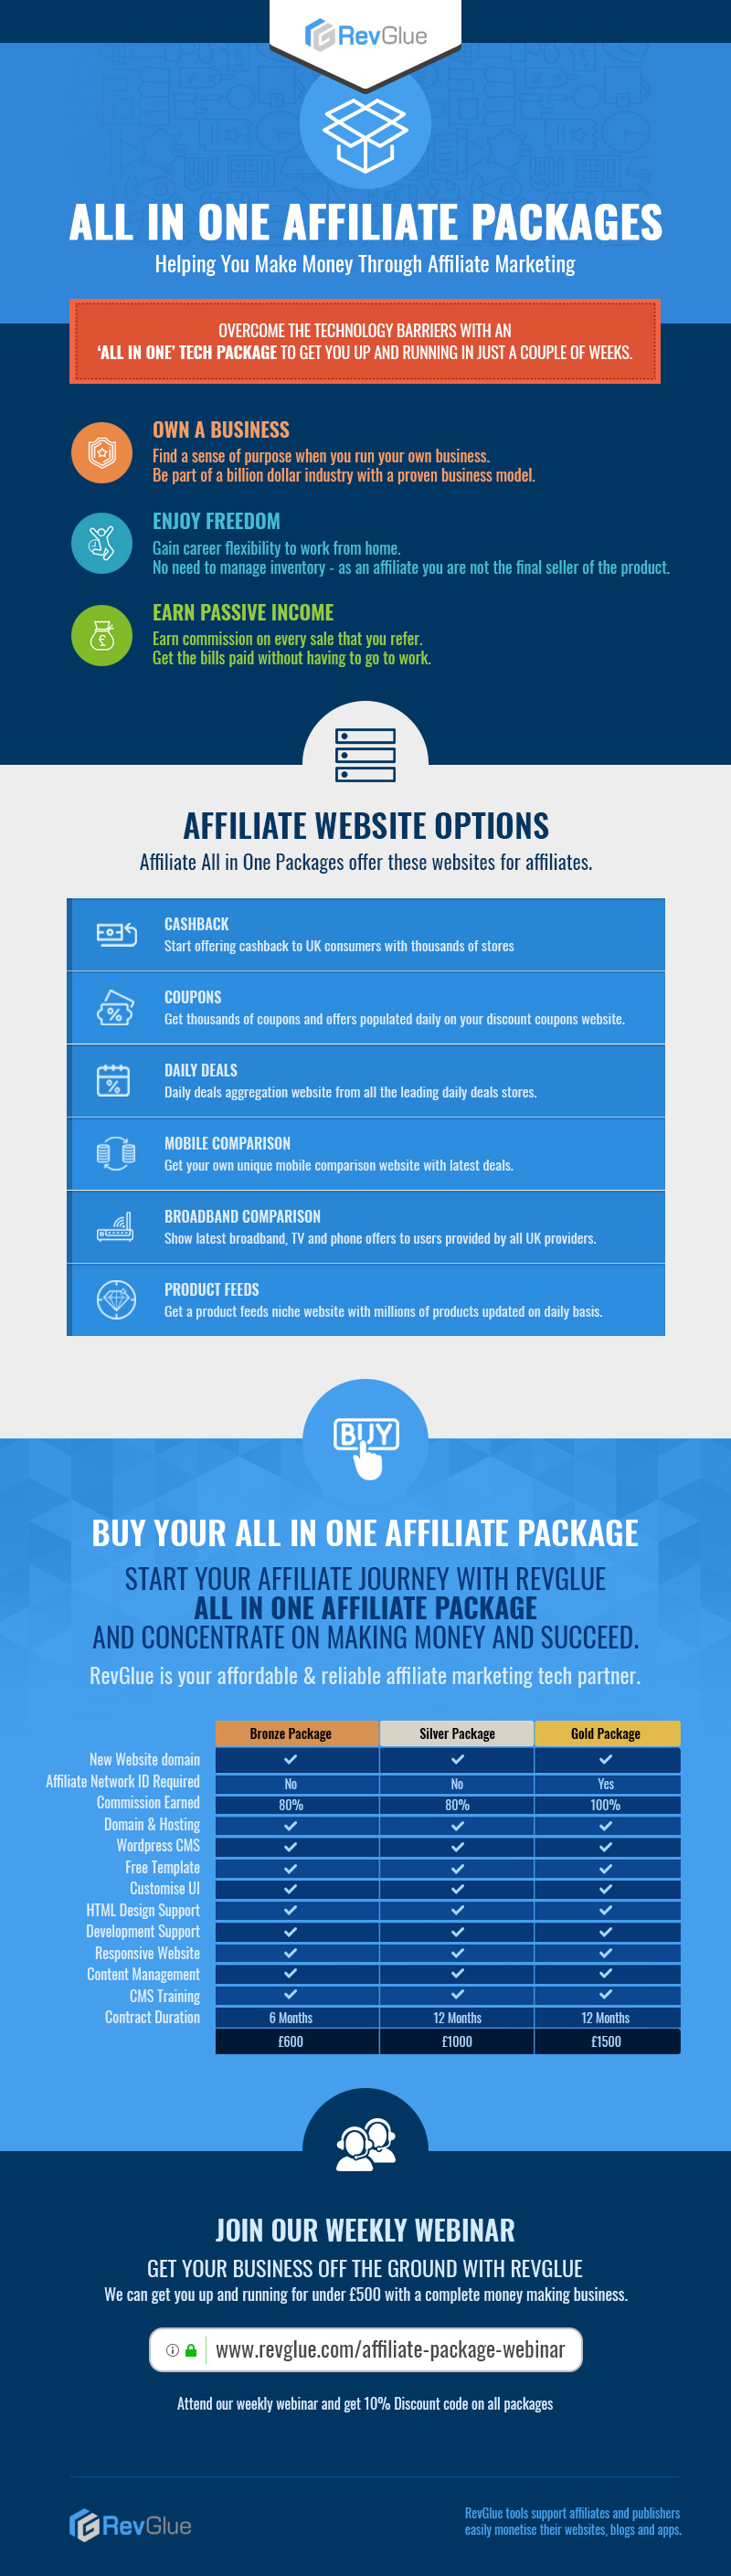 Explore RevGlue All In One Affiliate Packages - Infographic